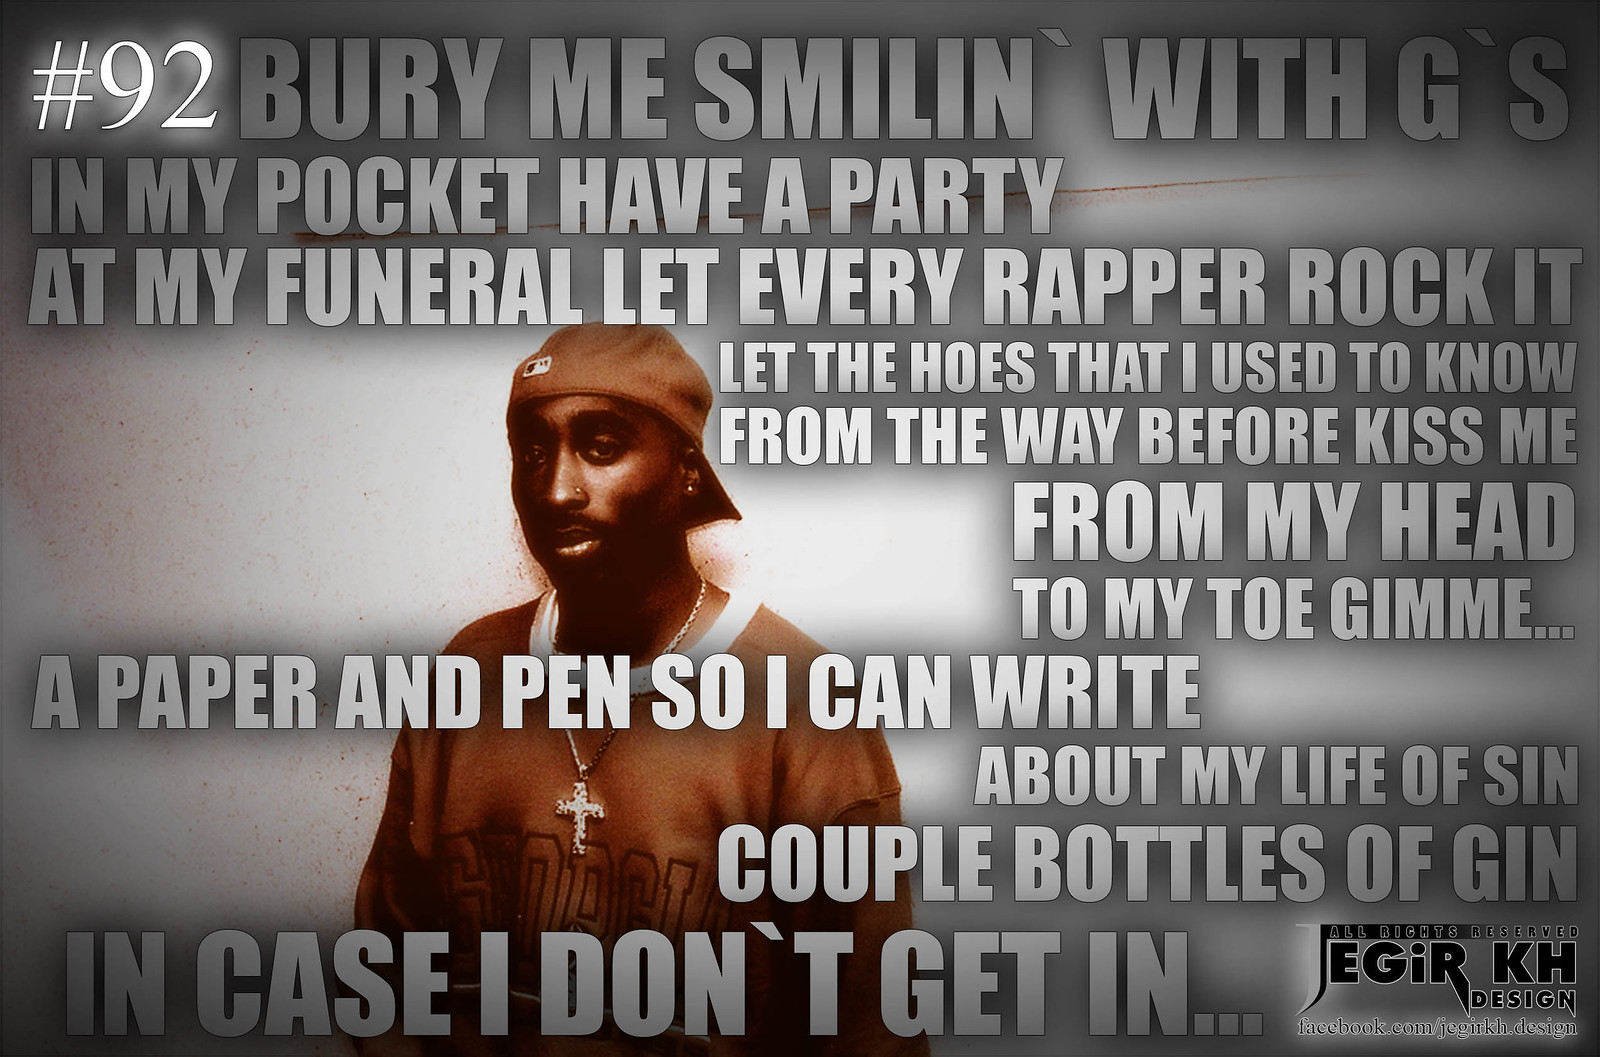 Gangster Quotes About Life 2Pac Quotes About Life Tumblr Lessons And Love Cover Photos